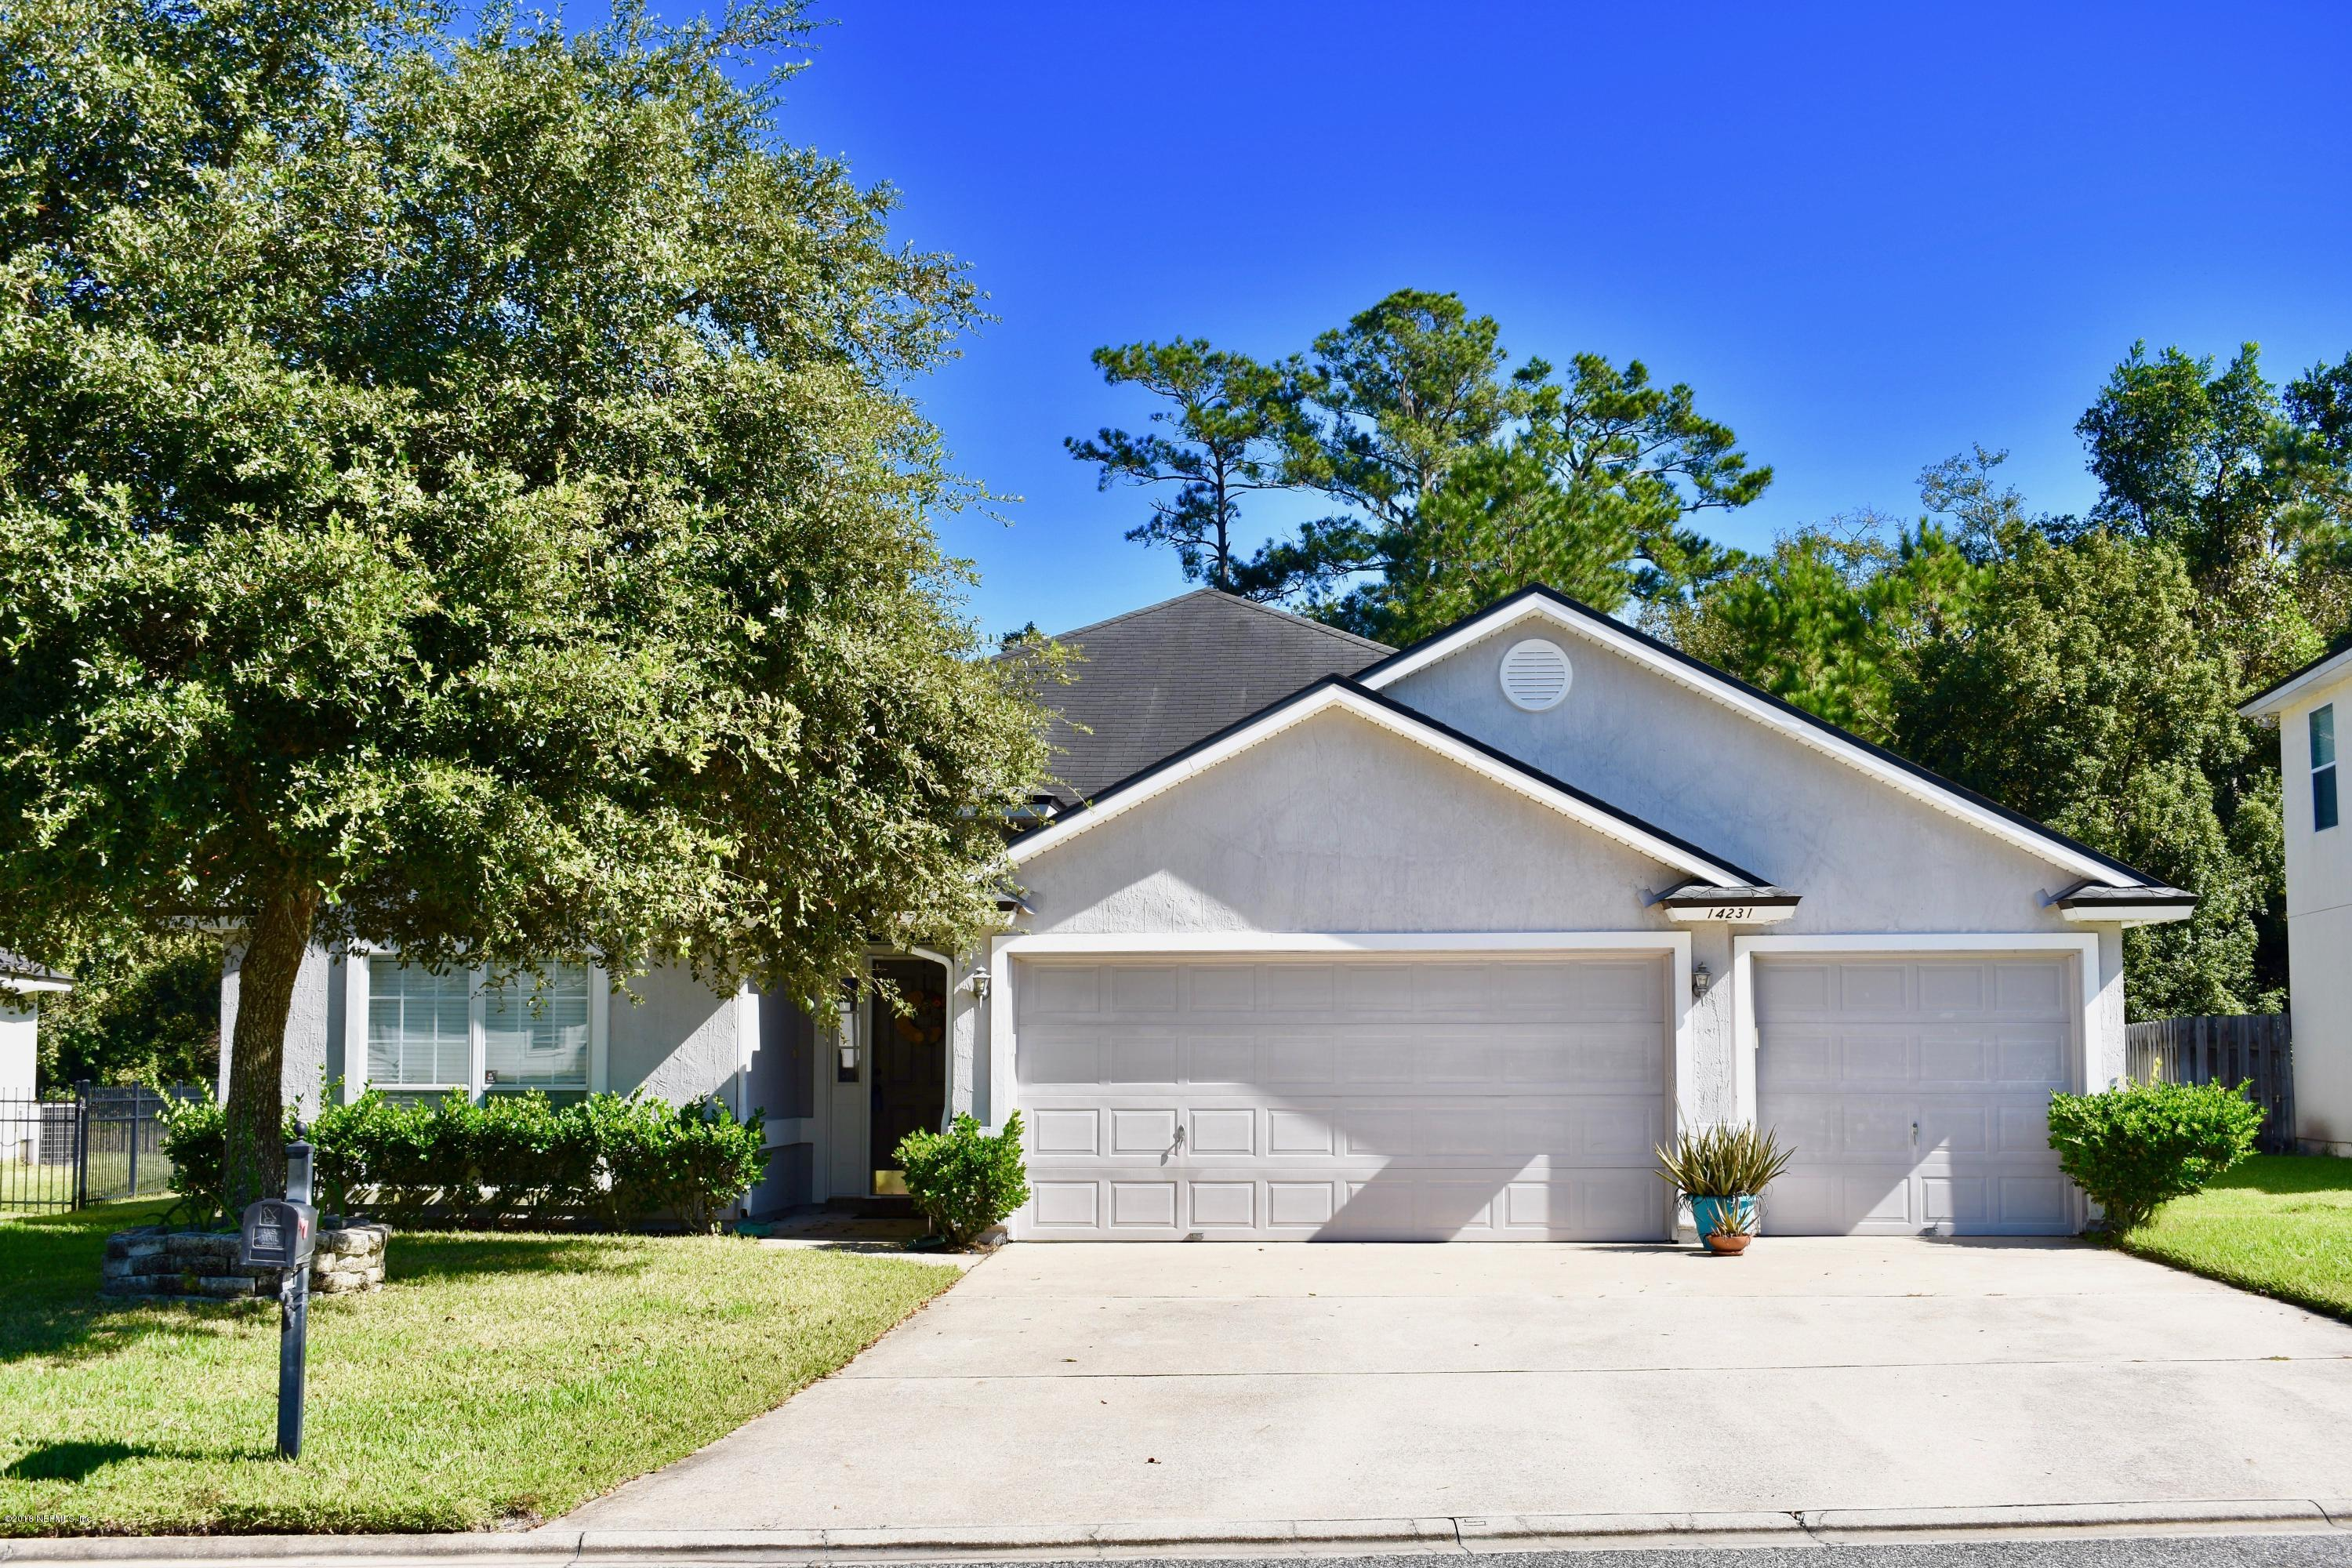 14231 FISH EAGLE, JACKSONVILLE, FLORIDA 32226, 4 Bedrooms Bedrooms, ,3 BathroomsBathrooms,Residential - single family,For sale,FISH EAGLE,965380